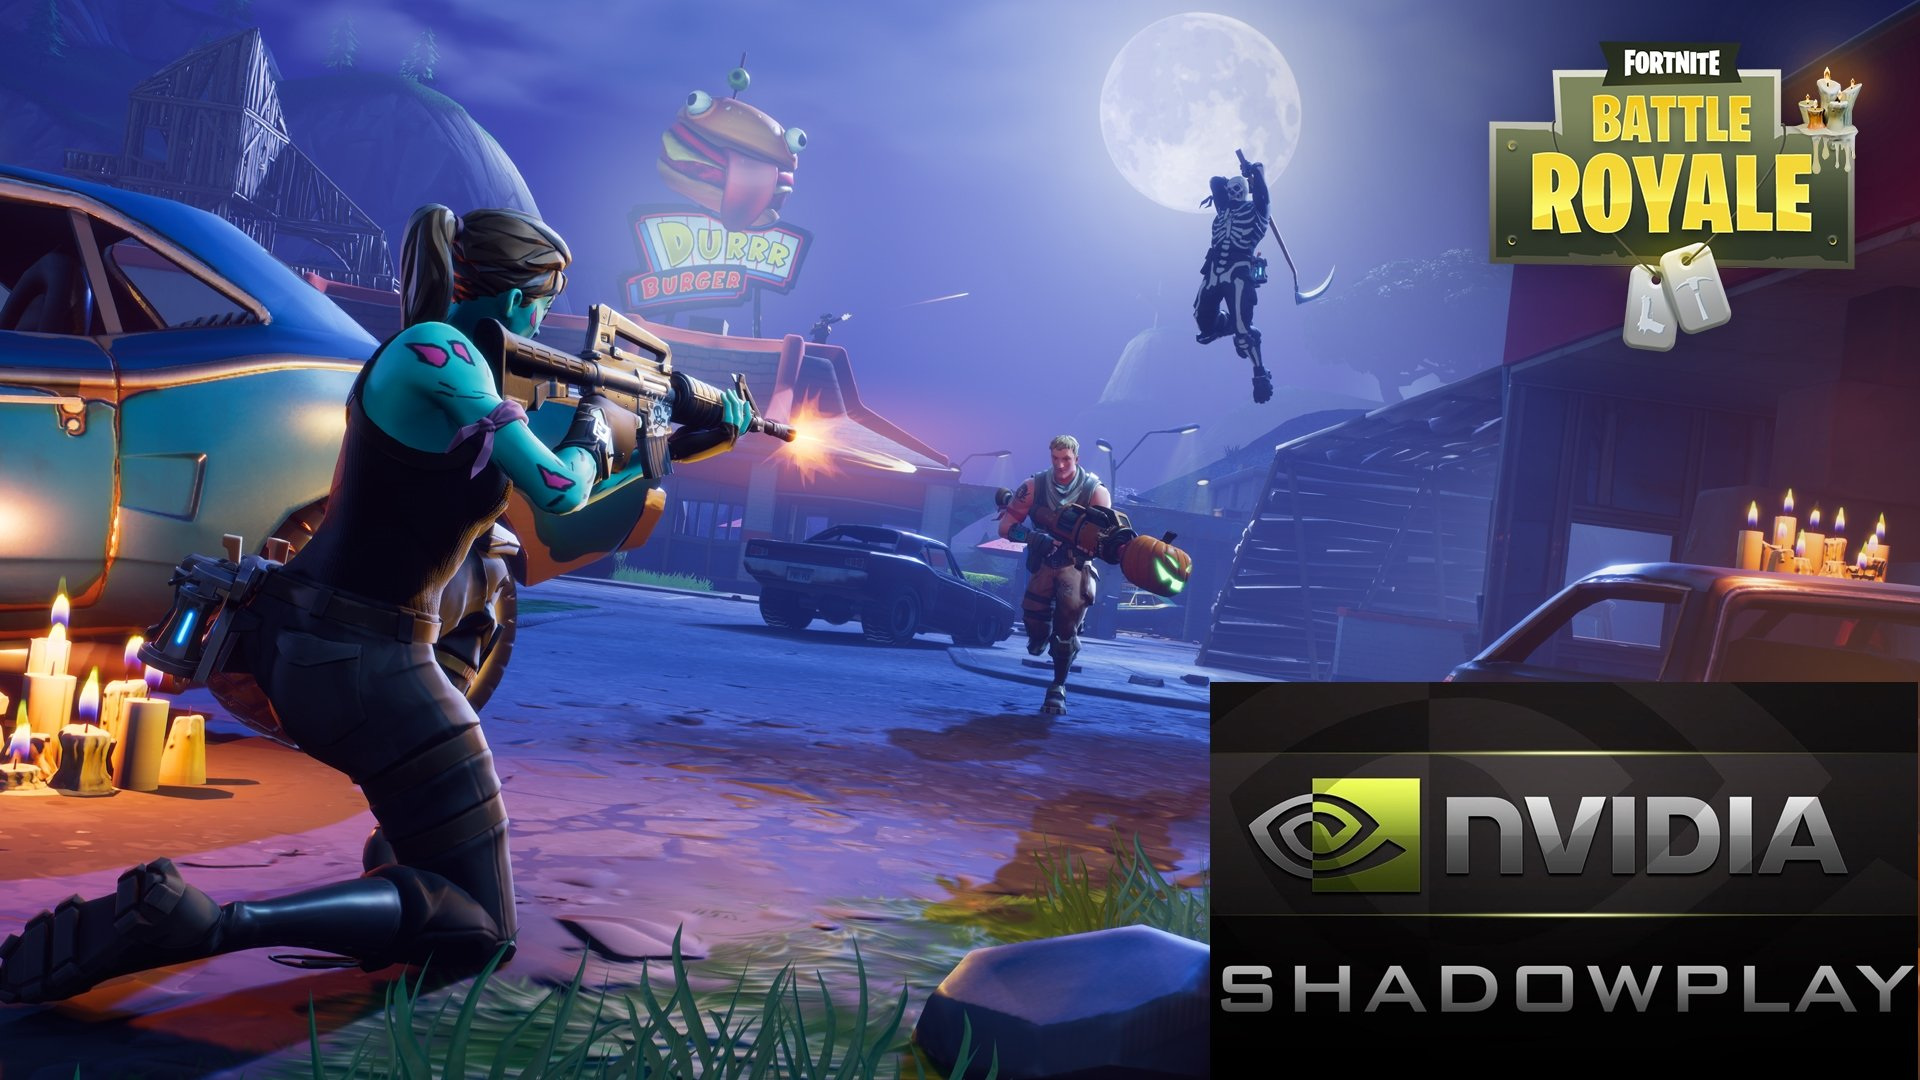 How To Turn On Nvidia Shadowplay Highlights for Fortnite Battle